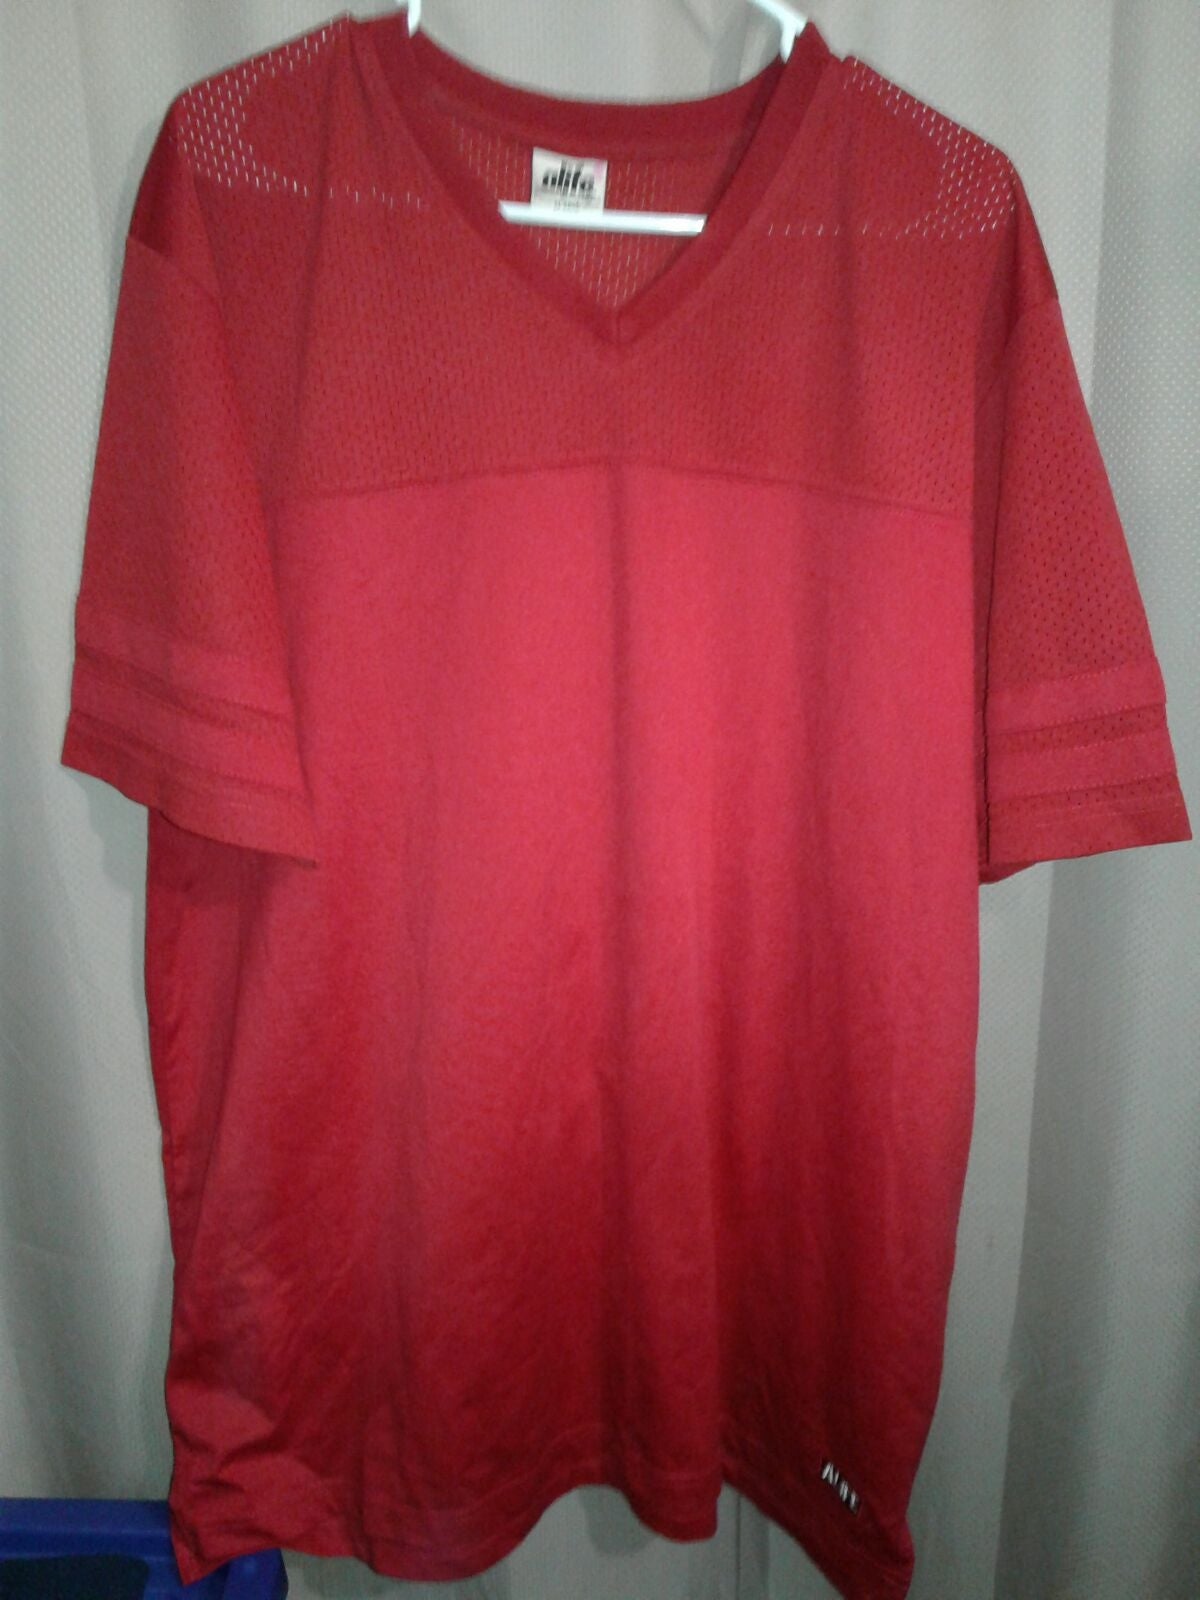 life mens jersey size XL red